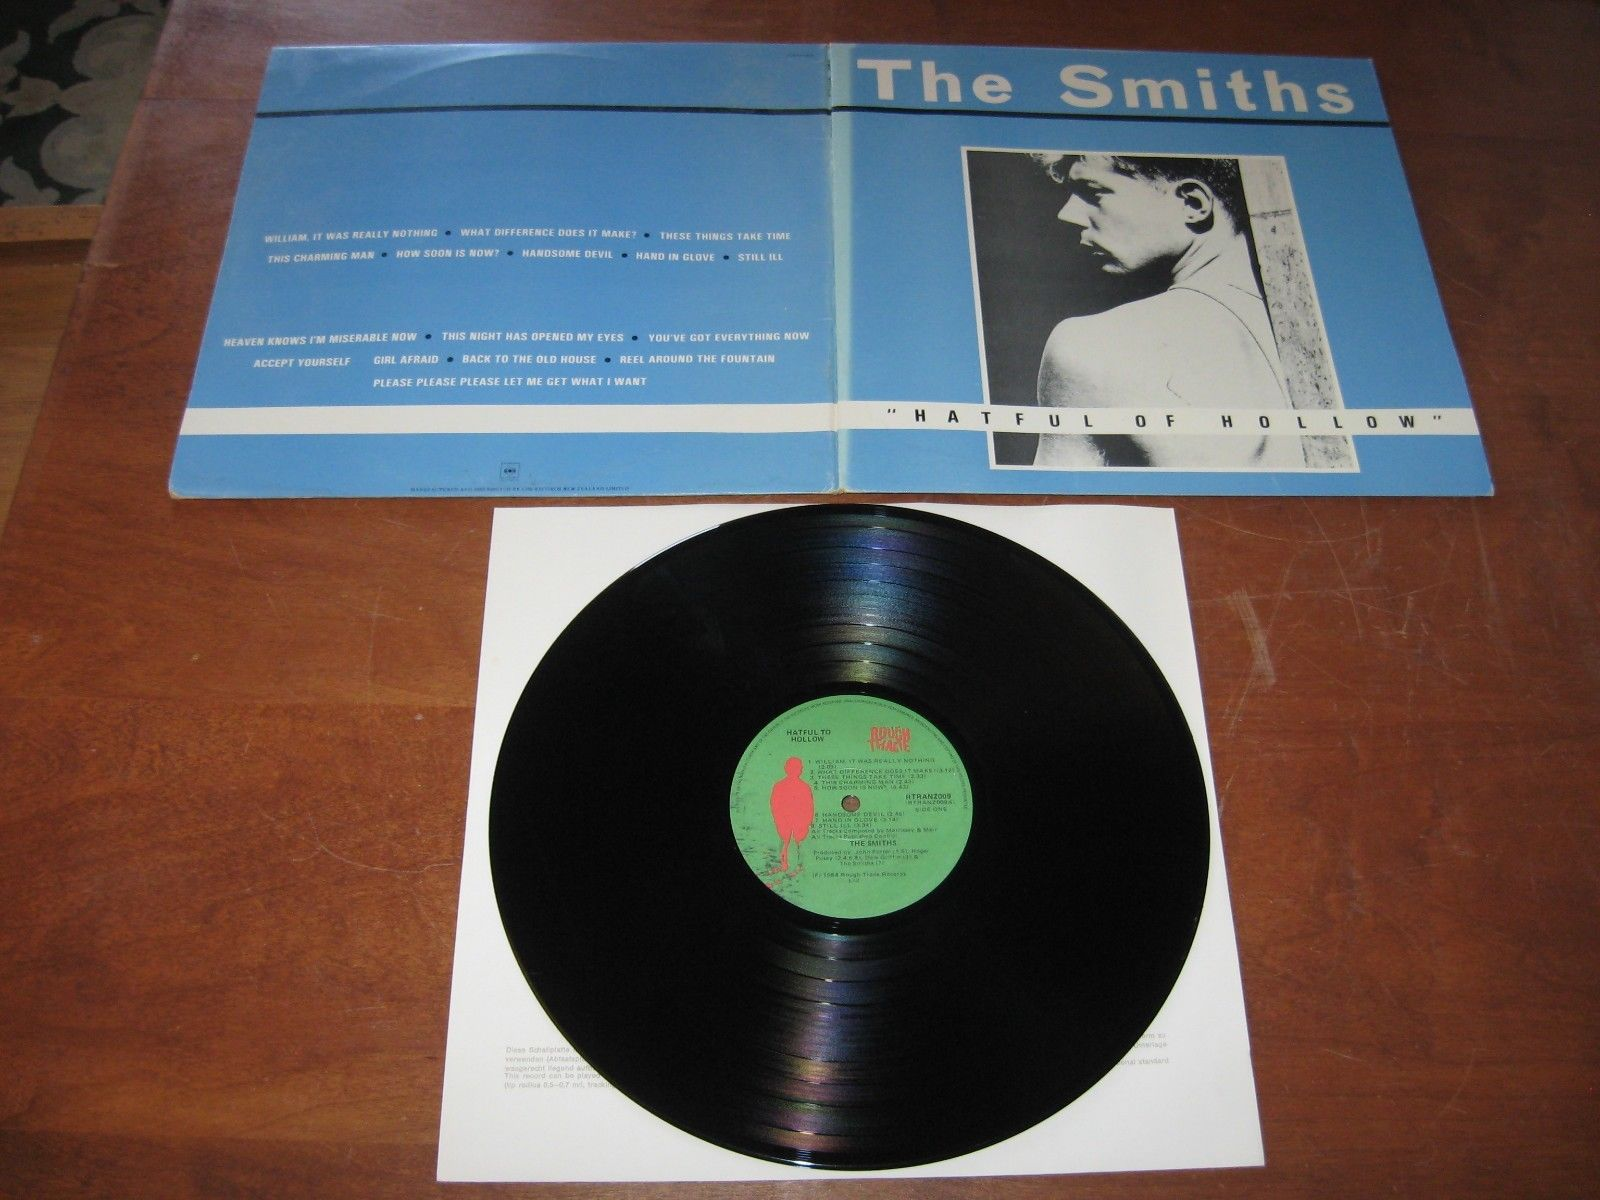 The Smiths RECORD LP Vinyl  Morrissey HATEFUL OF HOLLOW NEW ZEALAND NM